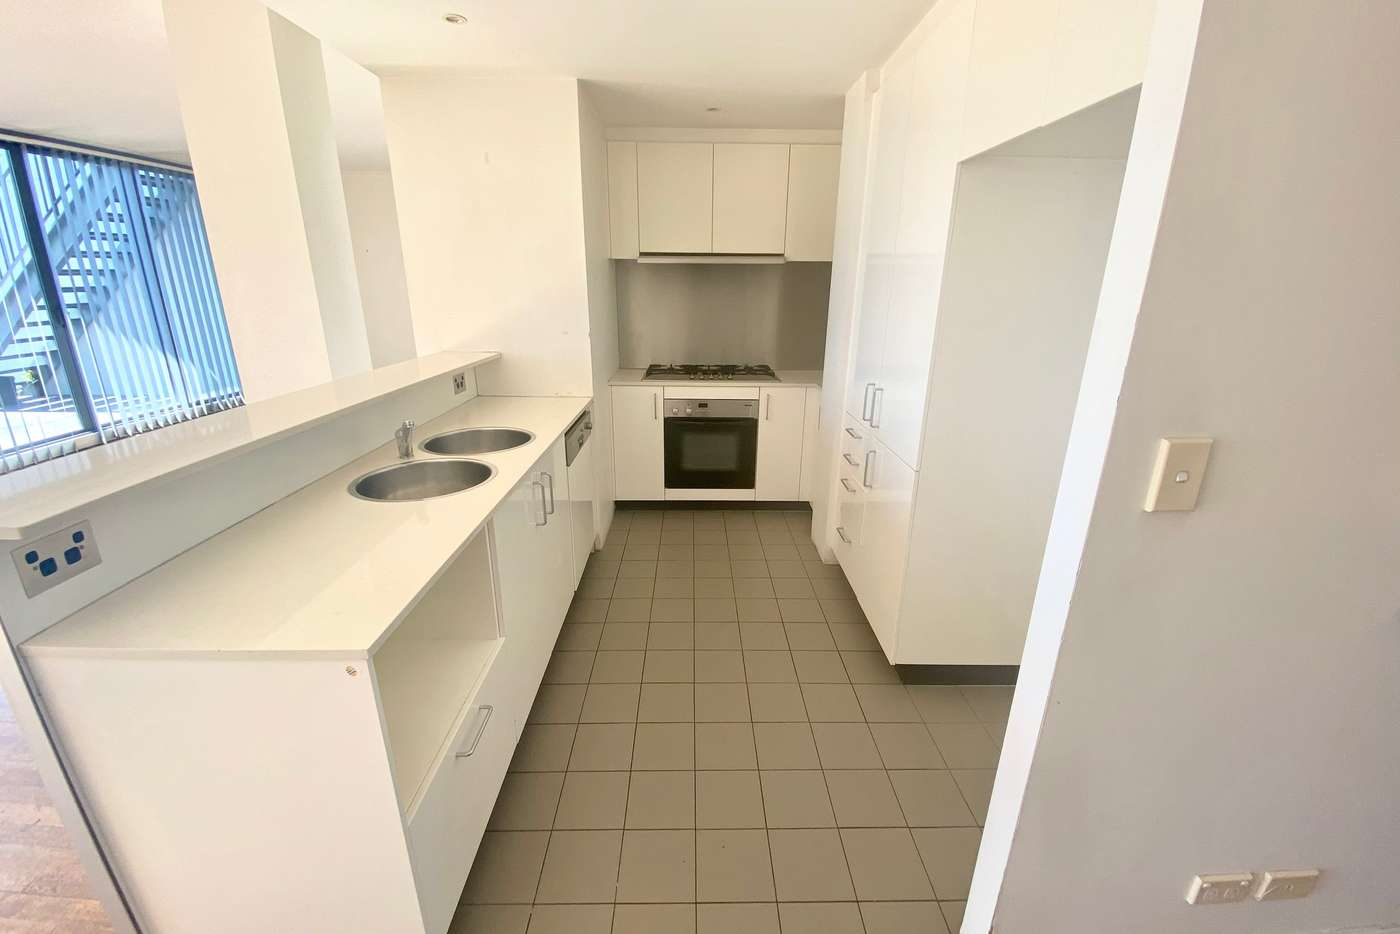 Seventh view of Homely apartment listing, 38/28 Gadigal Avenue, Zetland NSW 2017